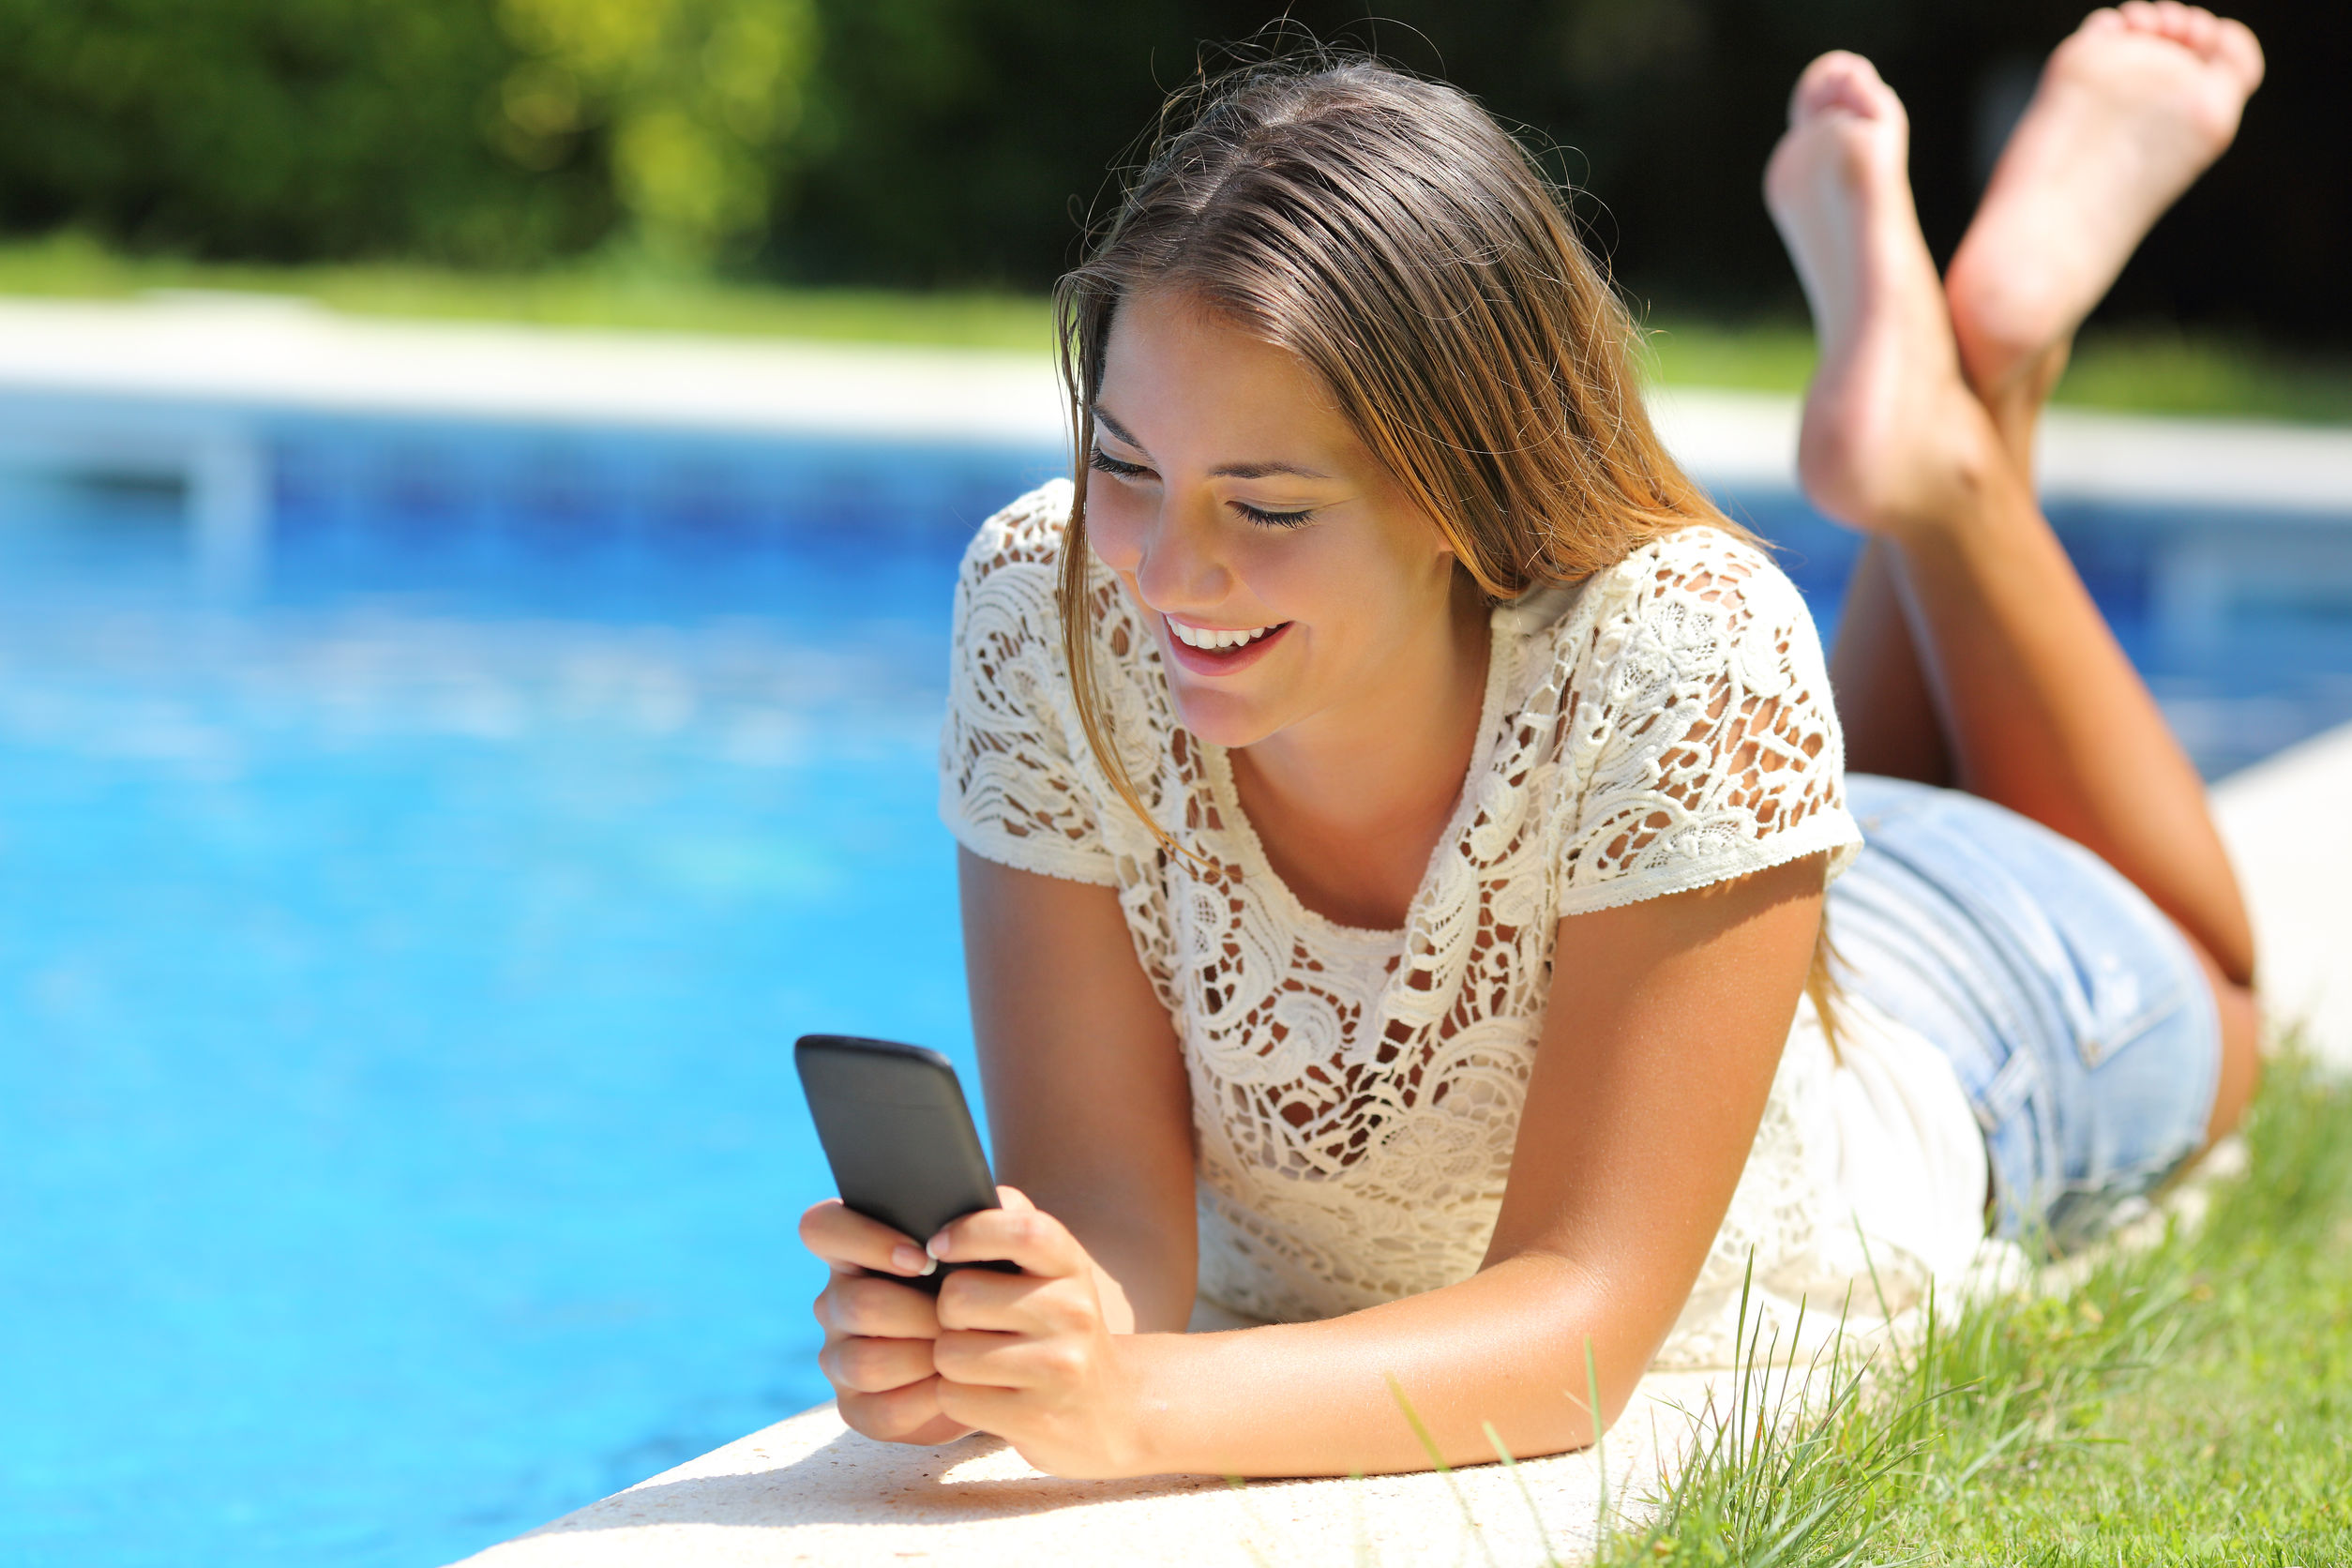 Teenager girl using a smart phone resting on a pool side with a blue water background